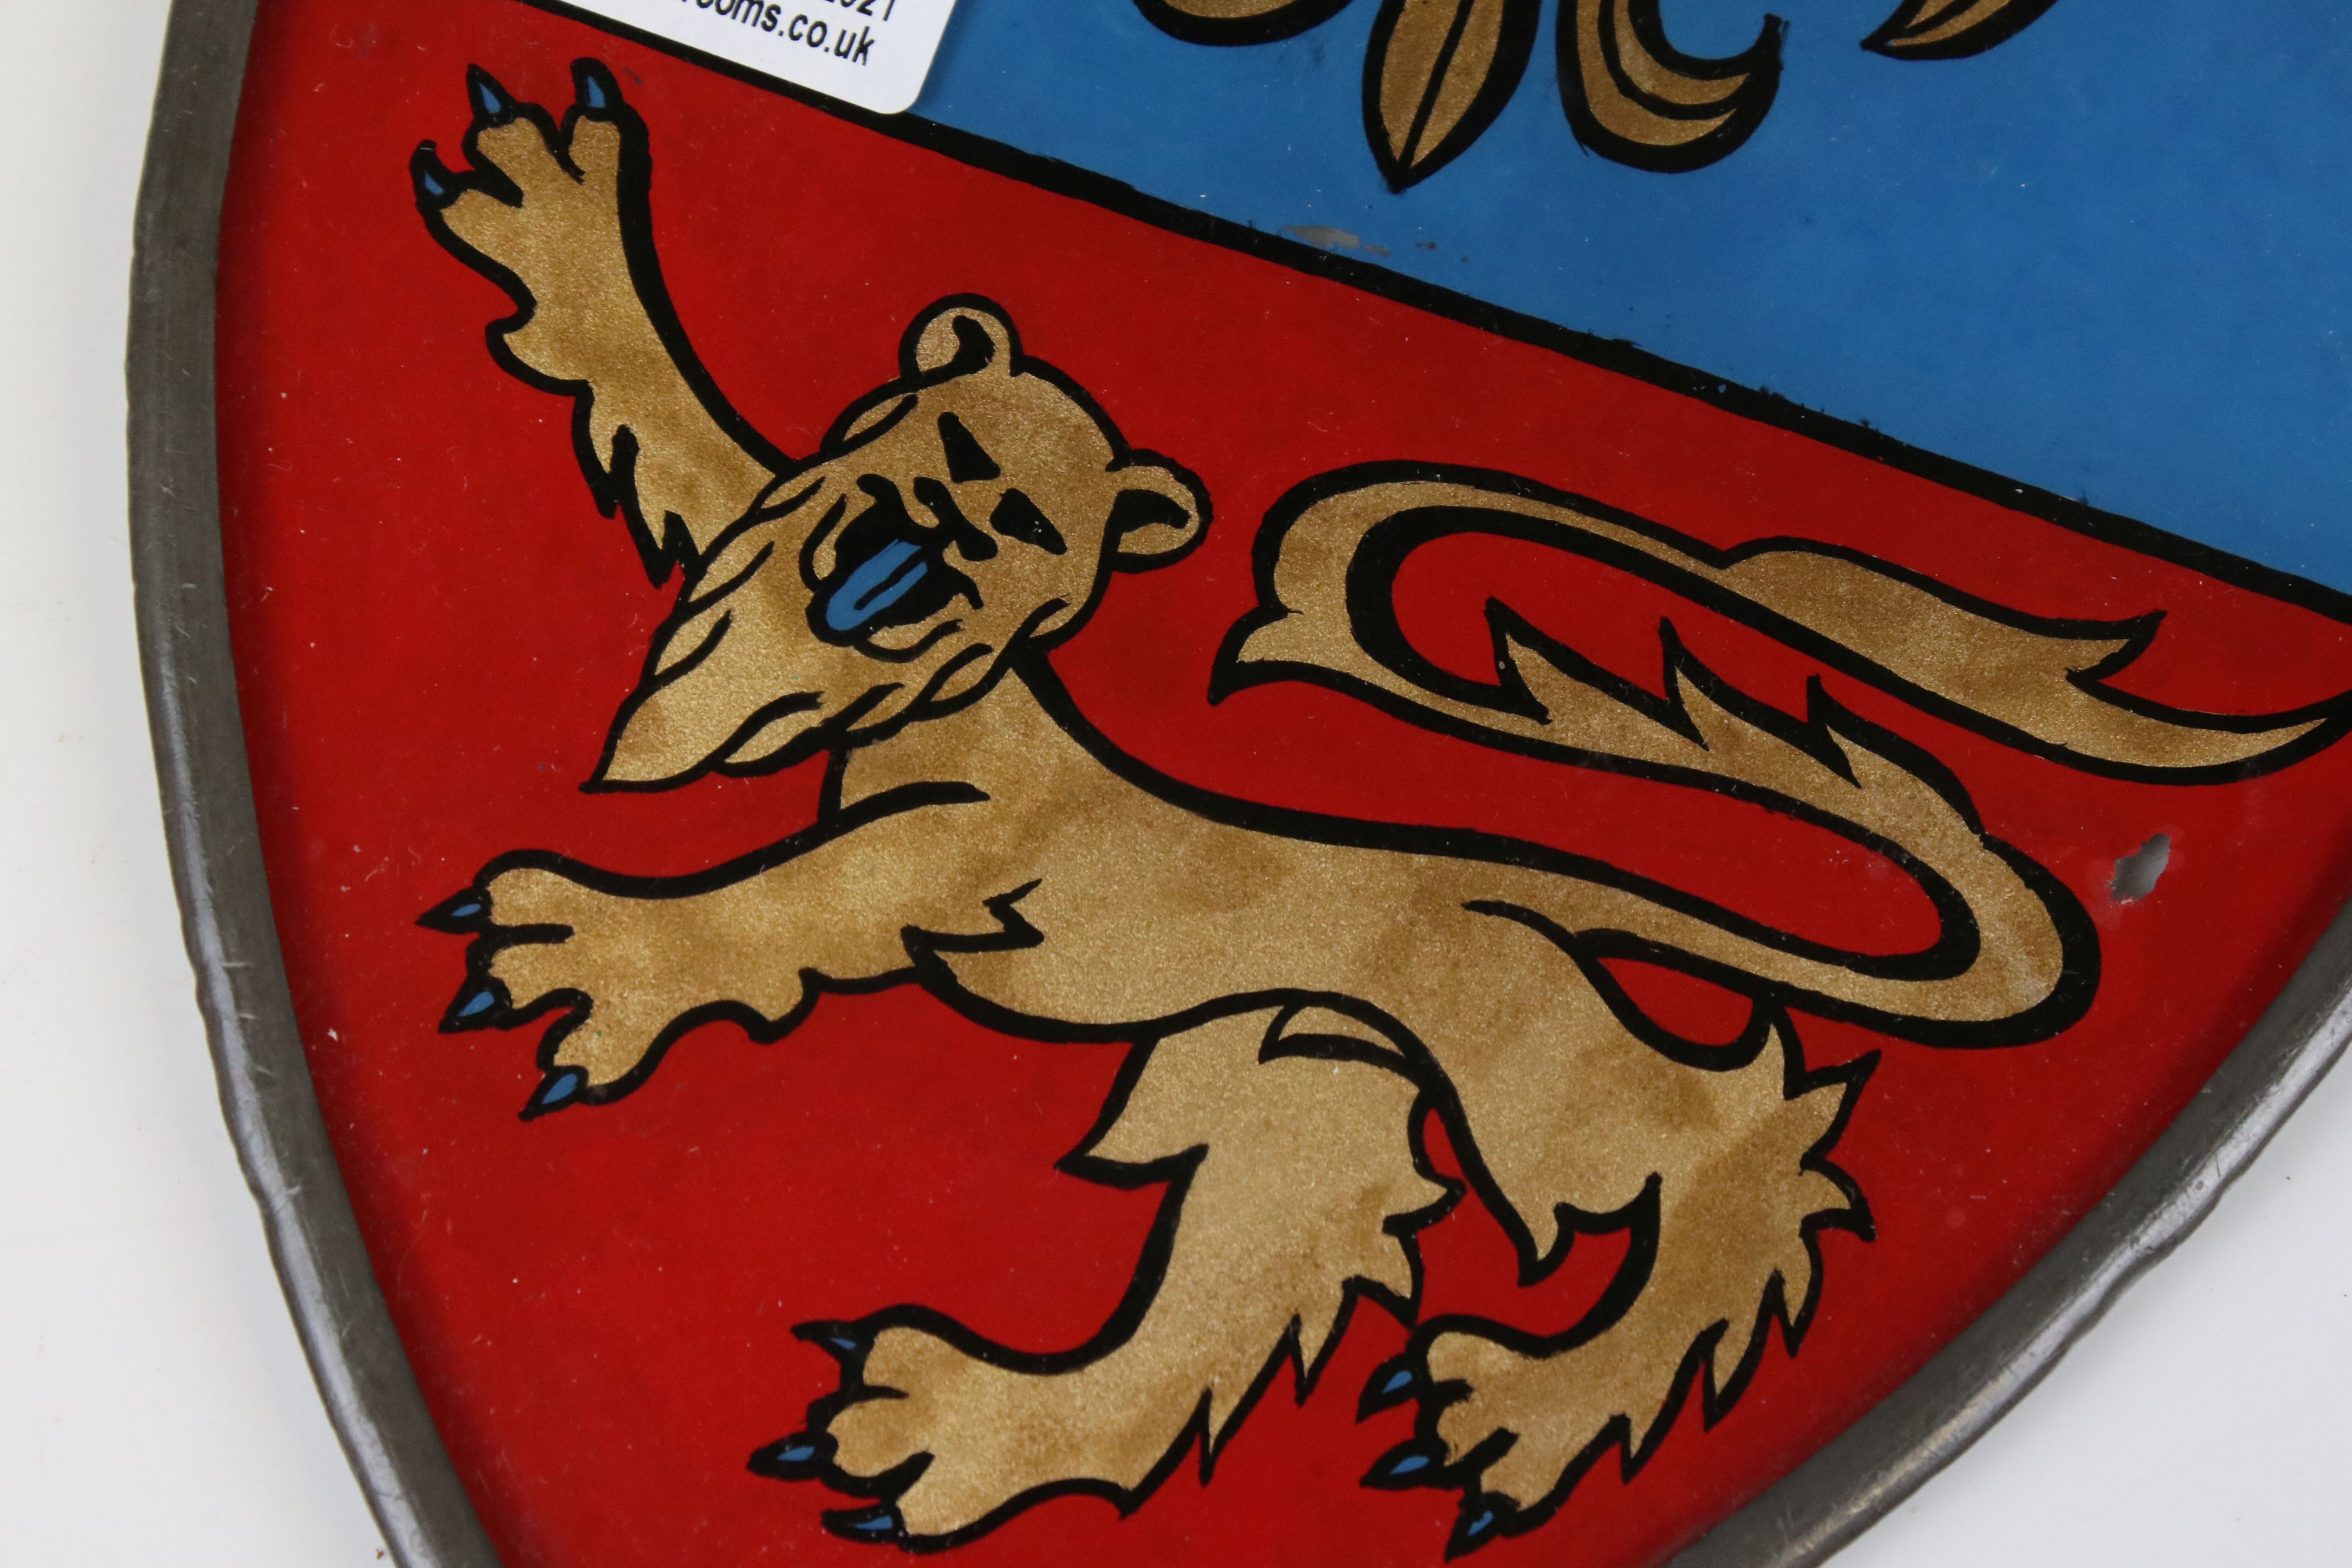 Pair of Heraldic Stained Glass Panels reverse painted with Fleur De Lys and Lions, contained in - Image 3 of 4